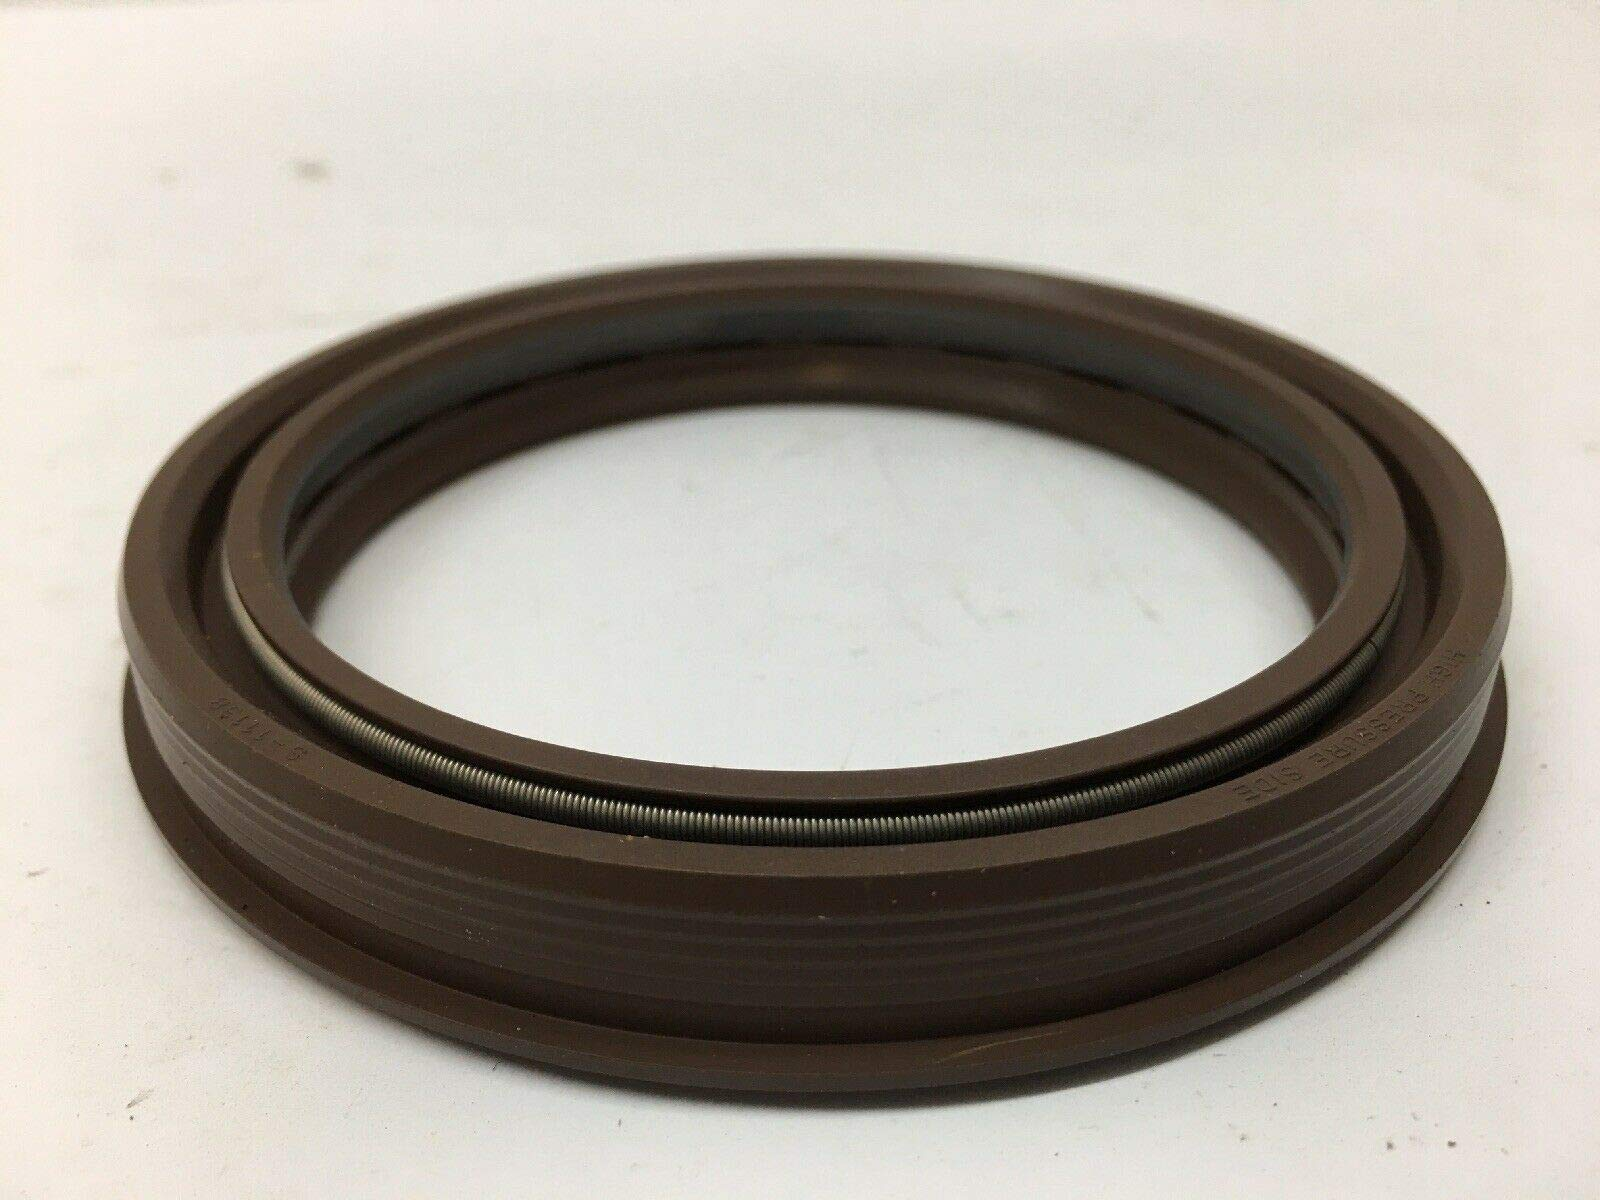 Plain Encased Seal A-1205-Q-2435 Meritor